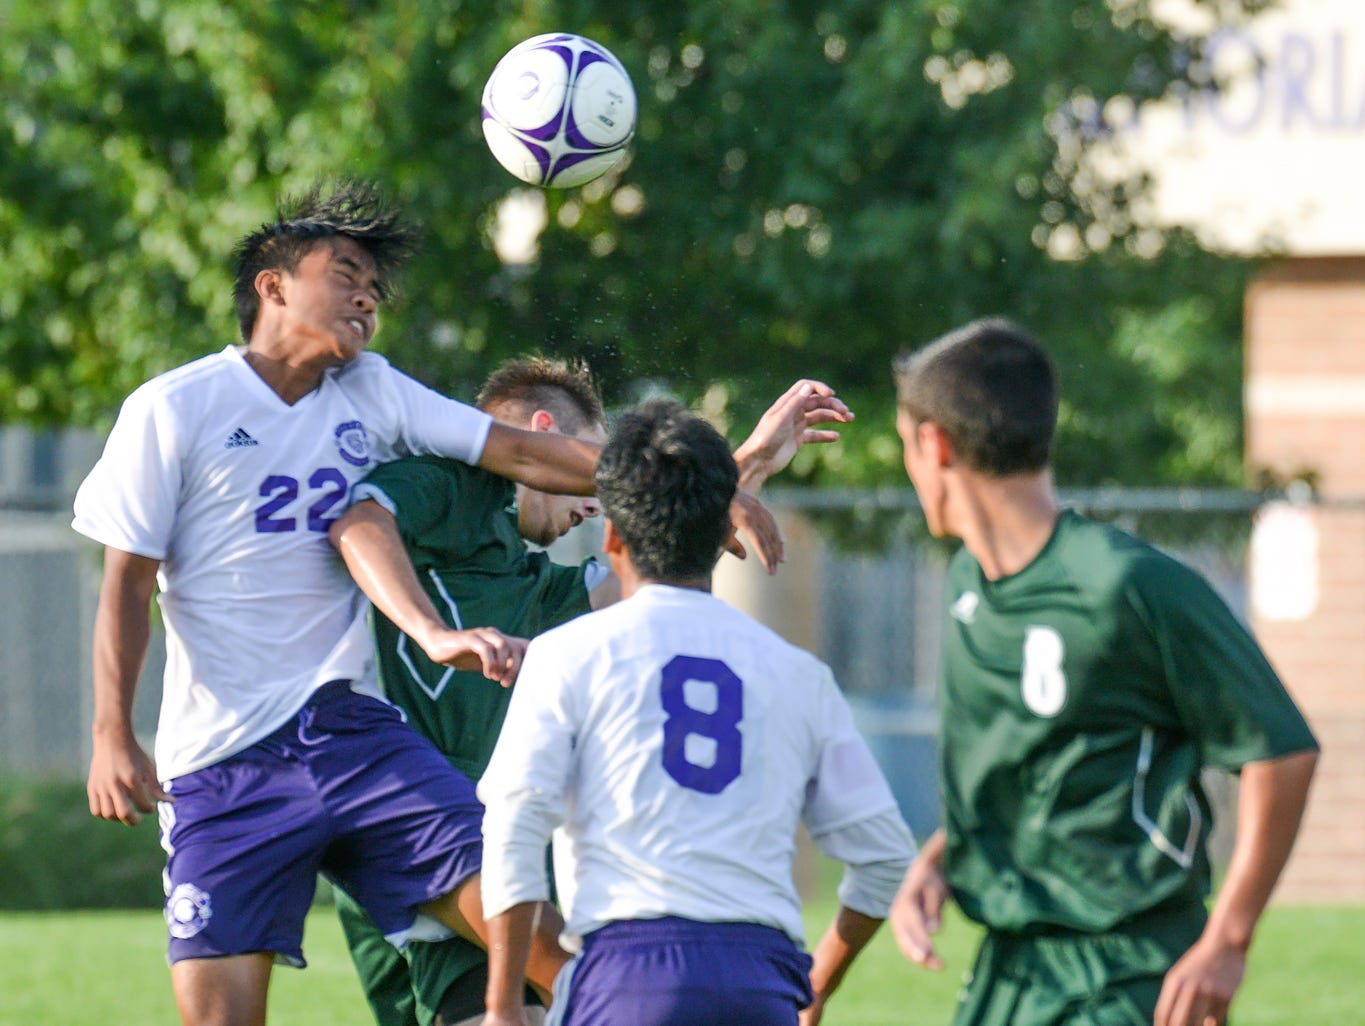 Lakeview's Shem Thang heads the ball to keep it in play Wednesday night as the Spartans face off against the Pennfield Panthers.